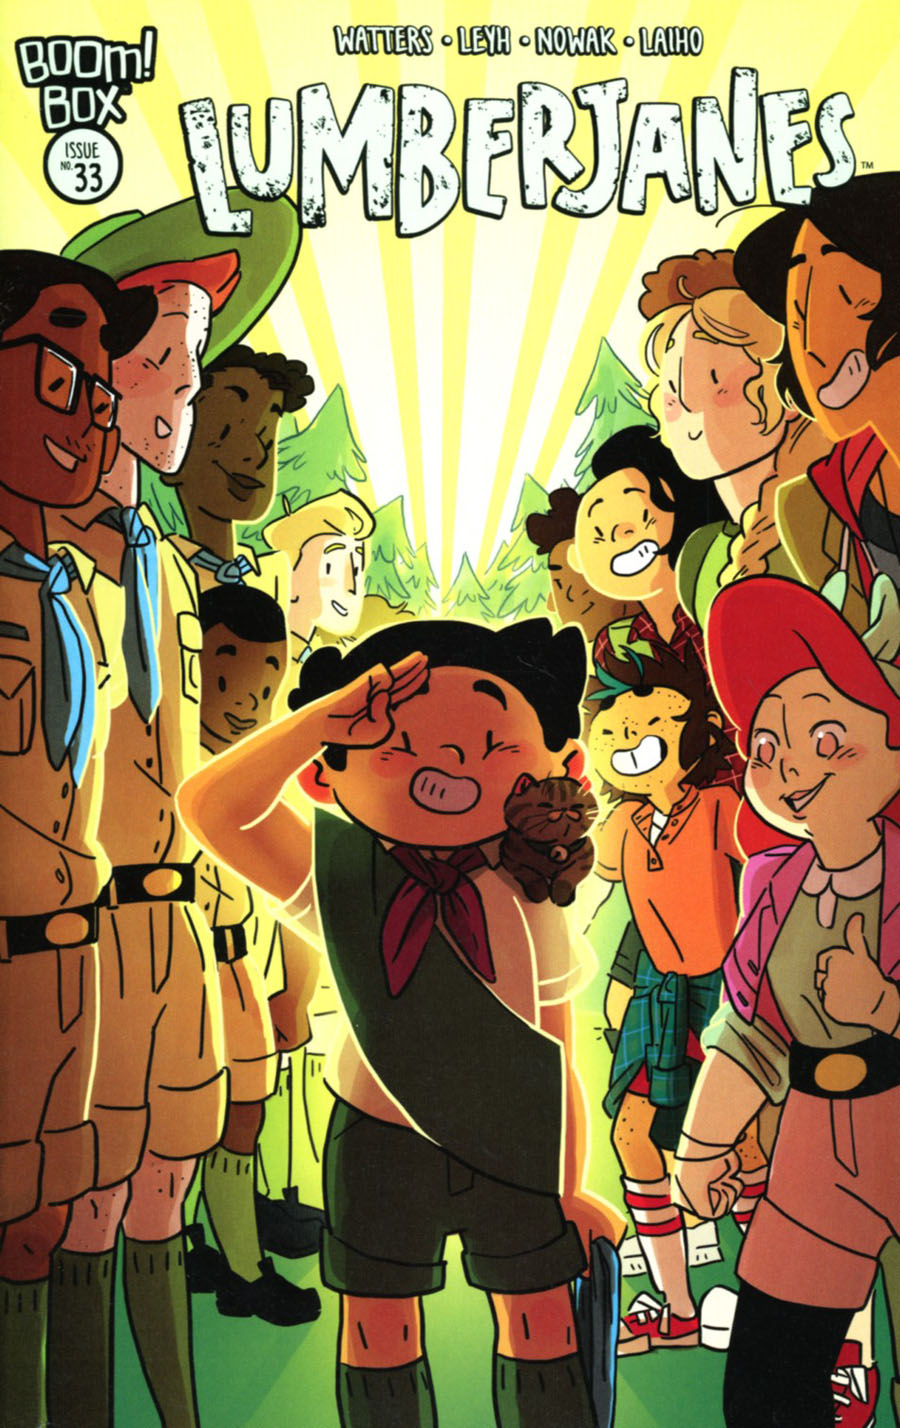 Lumberjanes #33 Cover A Regular Kat Leyh Cover